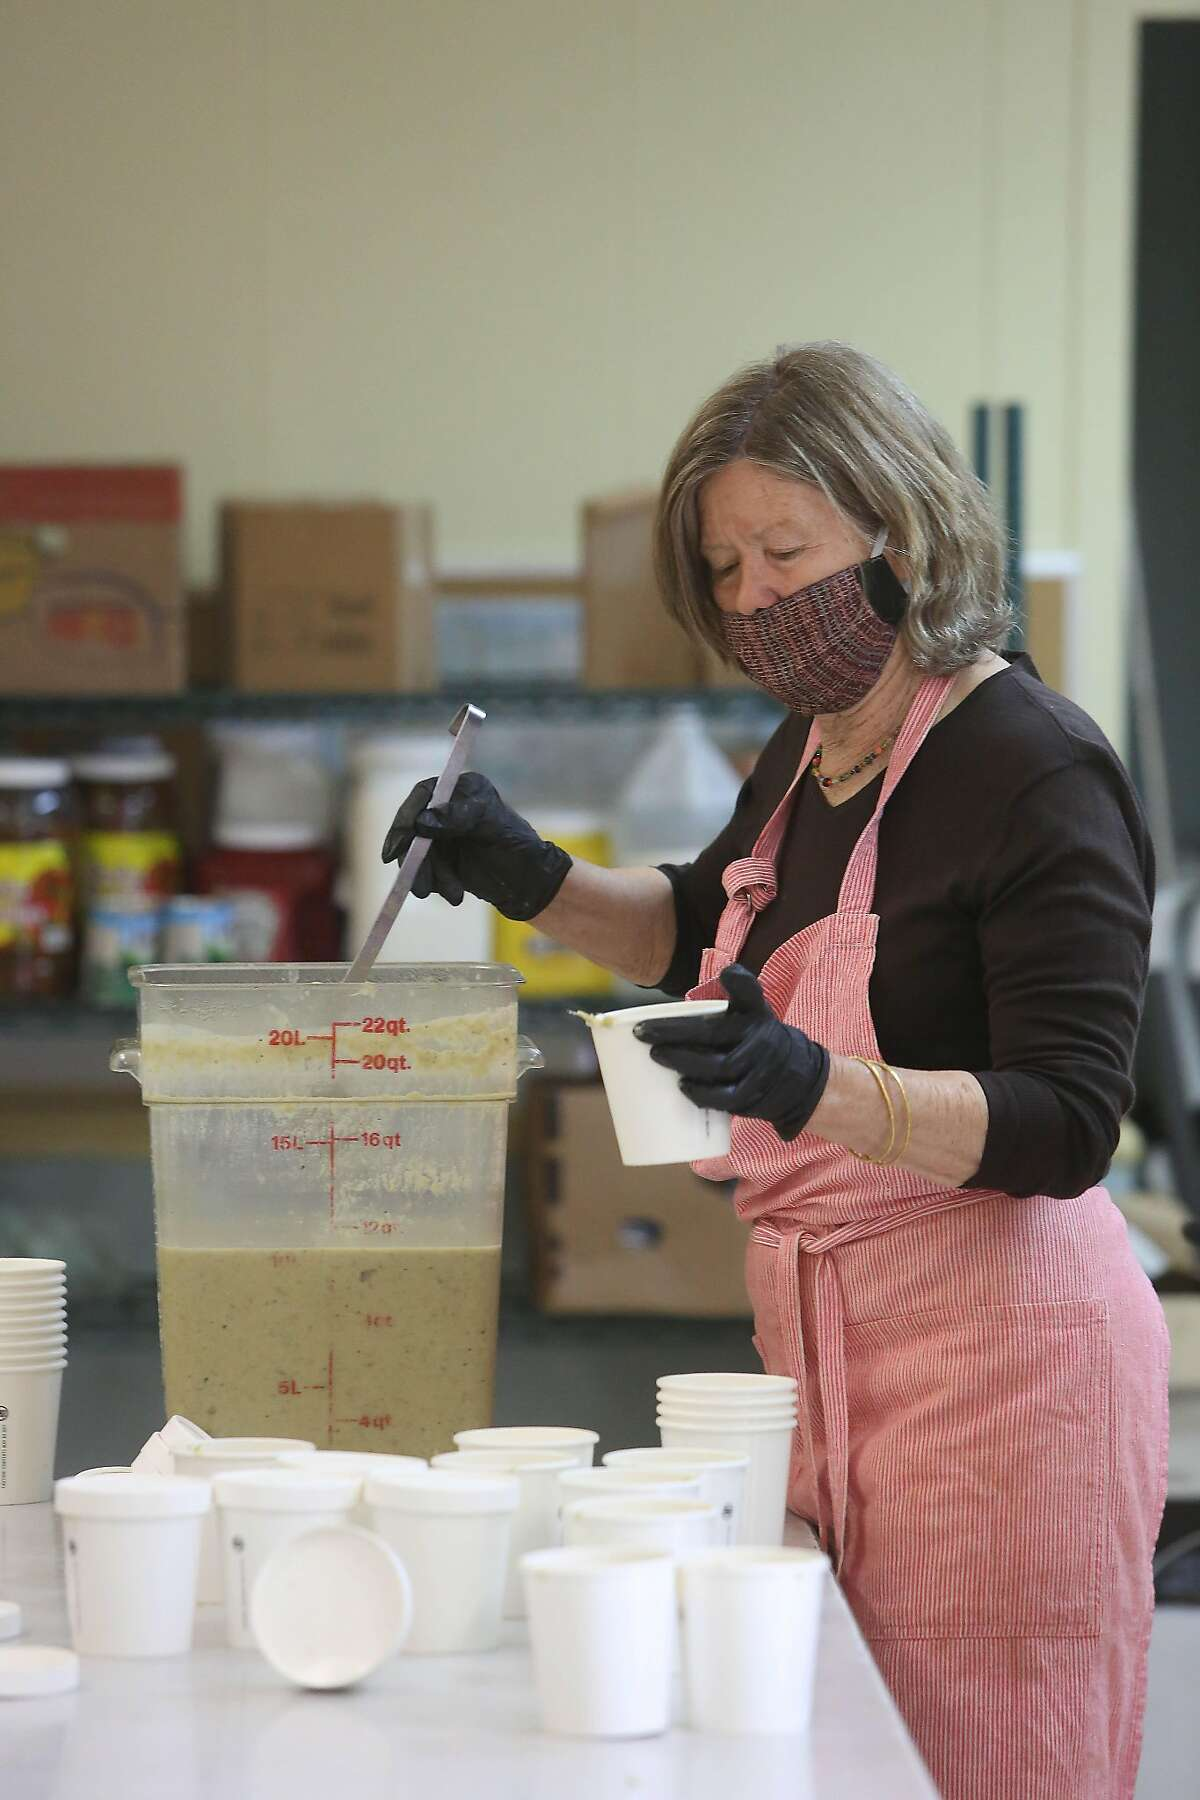 Anne Hatch, Food Runner volunteer, prepares food for delivery as she works in the new Food Runners' kitchen at the Waller Center in San Franciscon Monday, April 20, 2020 in San Francisco, Calif.